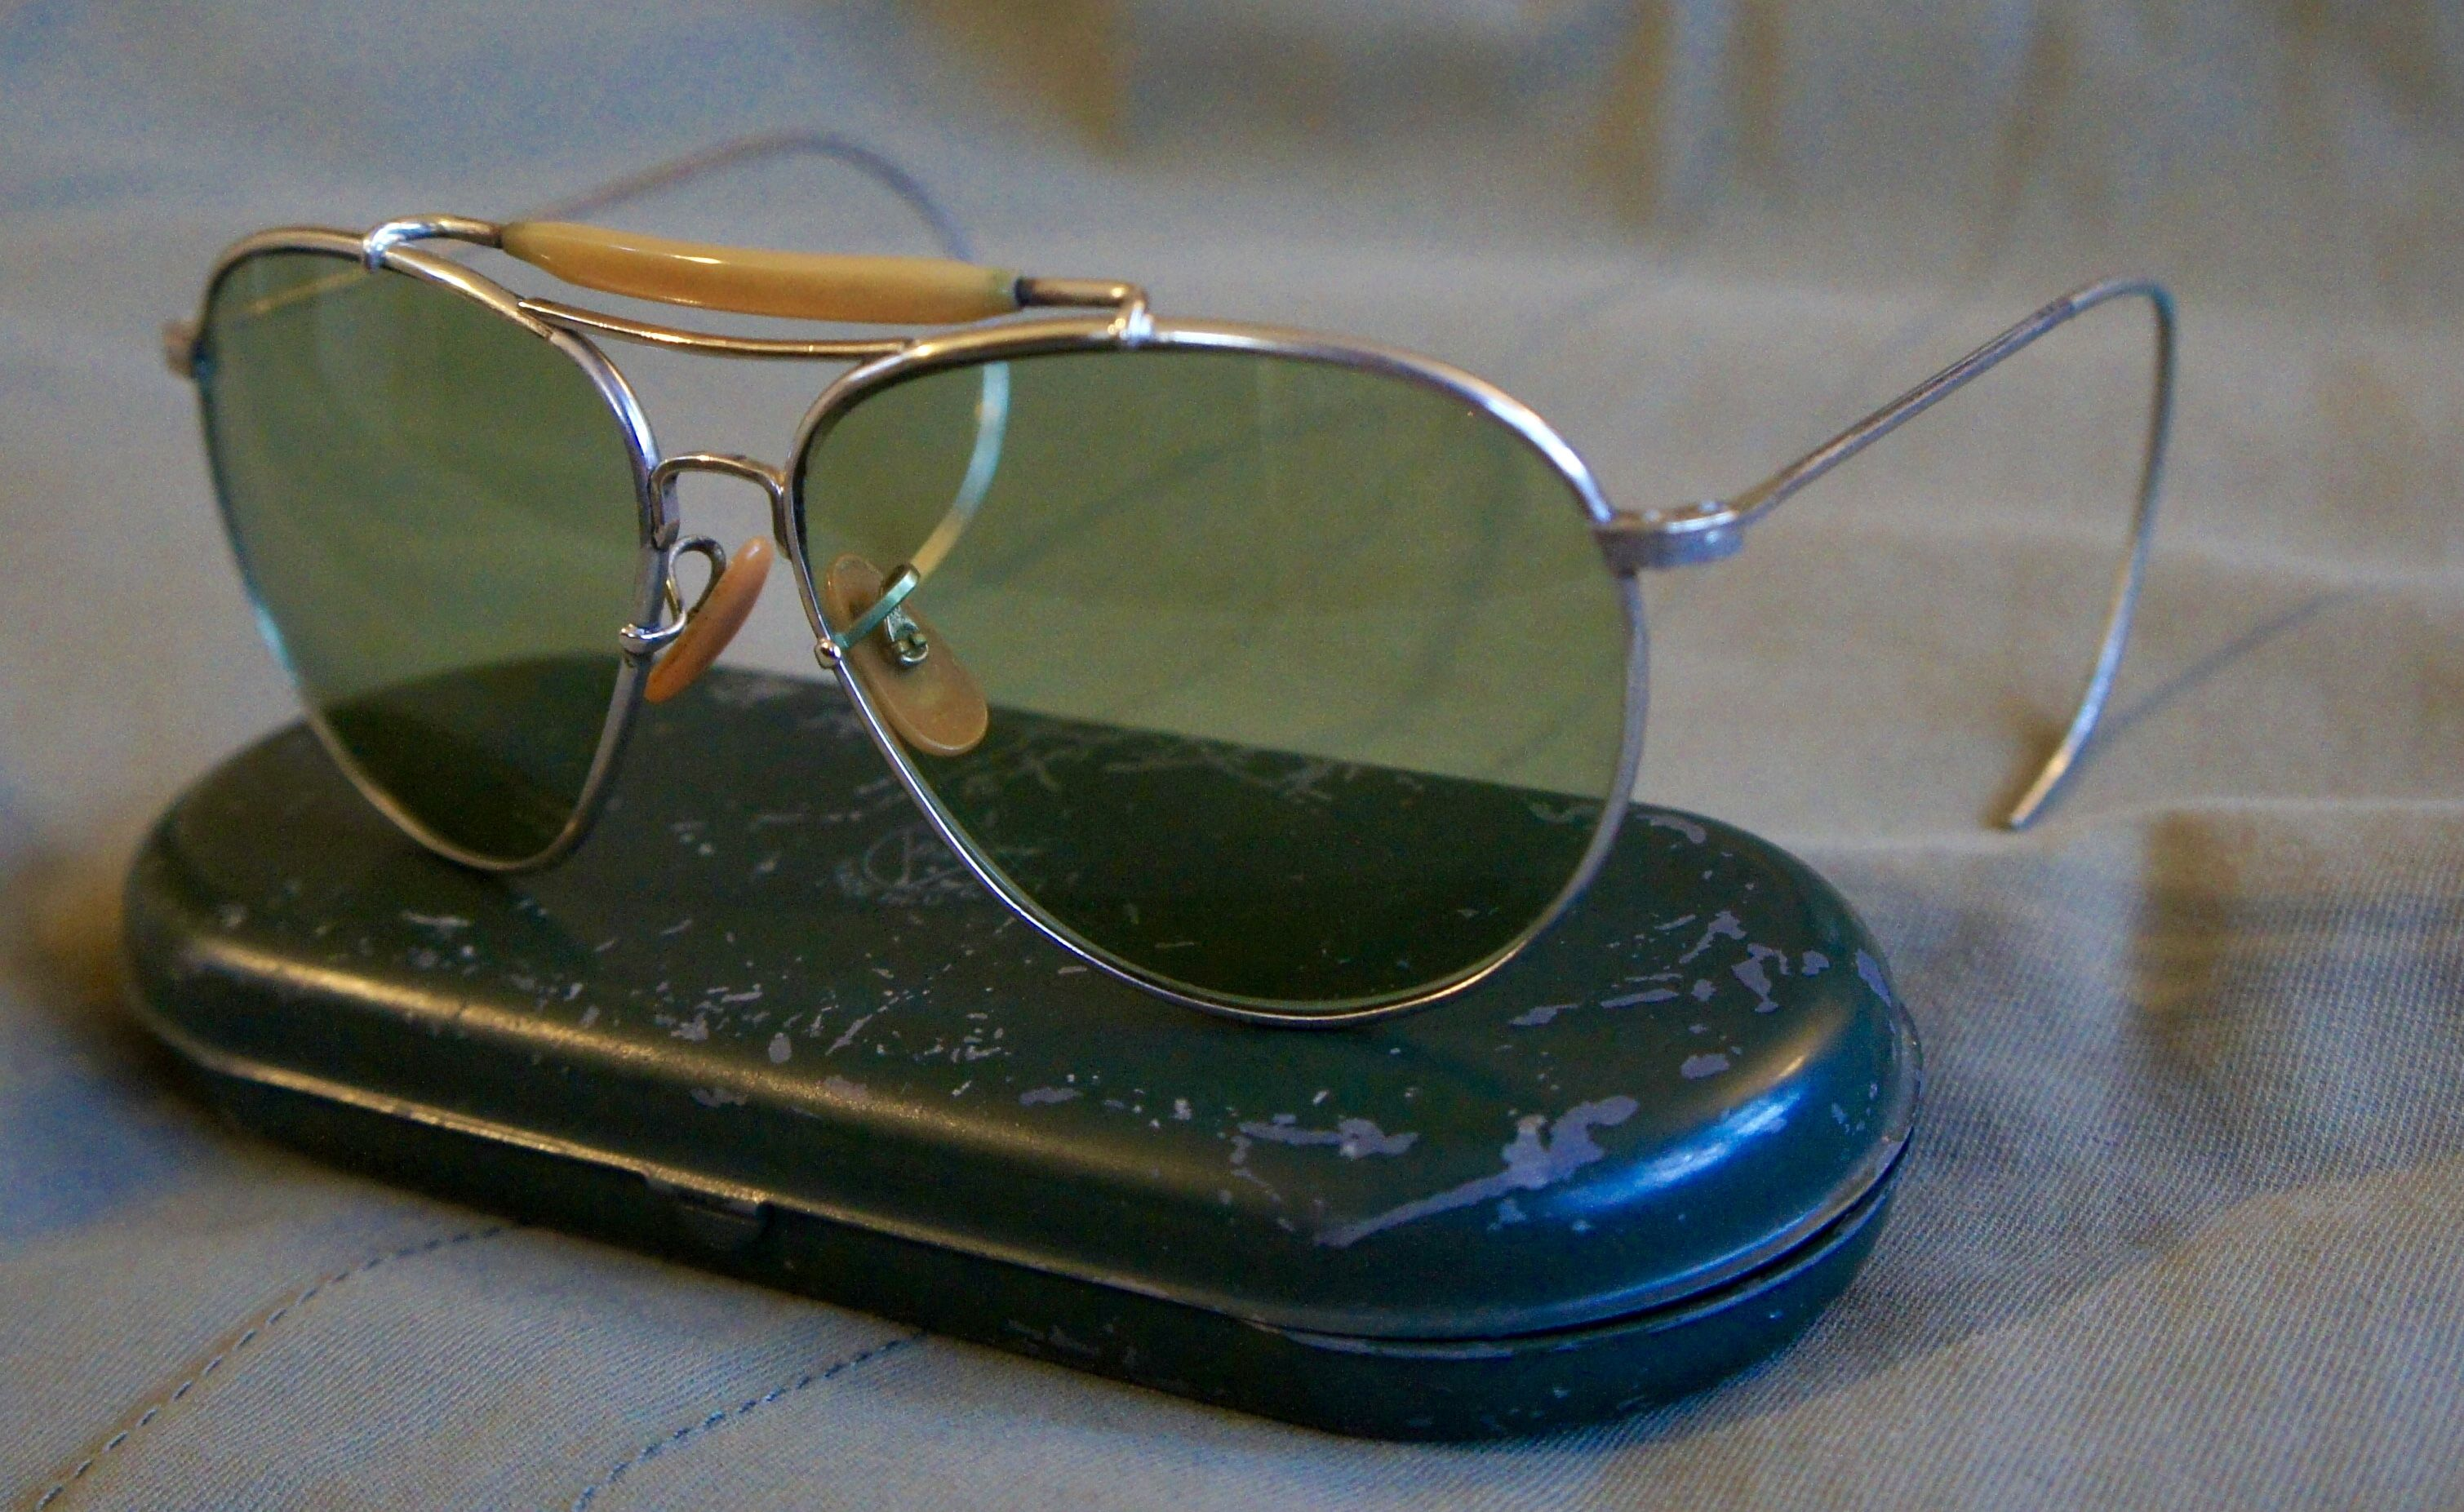 a704312493b5f WW2 Bausch and Lomb AN-6531 aviator sunglasses. Example taken from the bay  member Schutzenfest 42 collection.